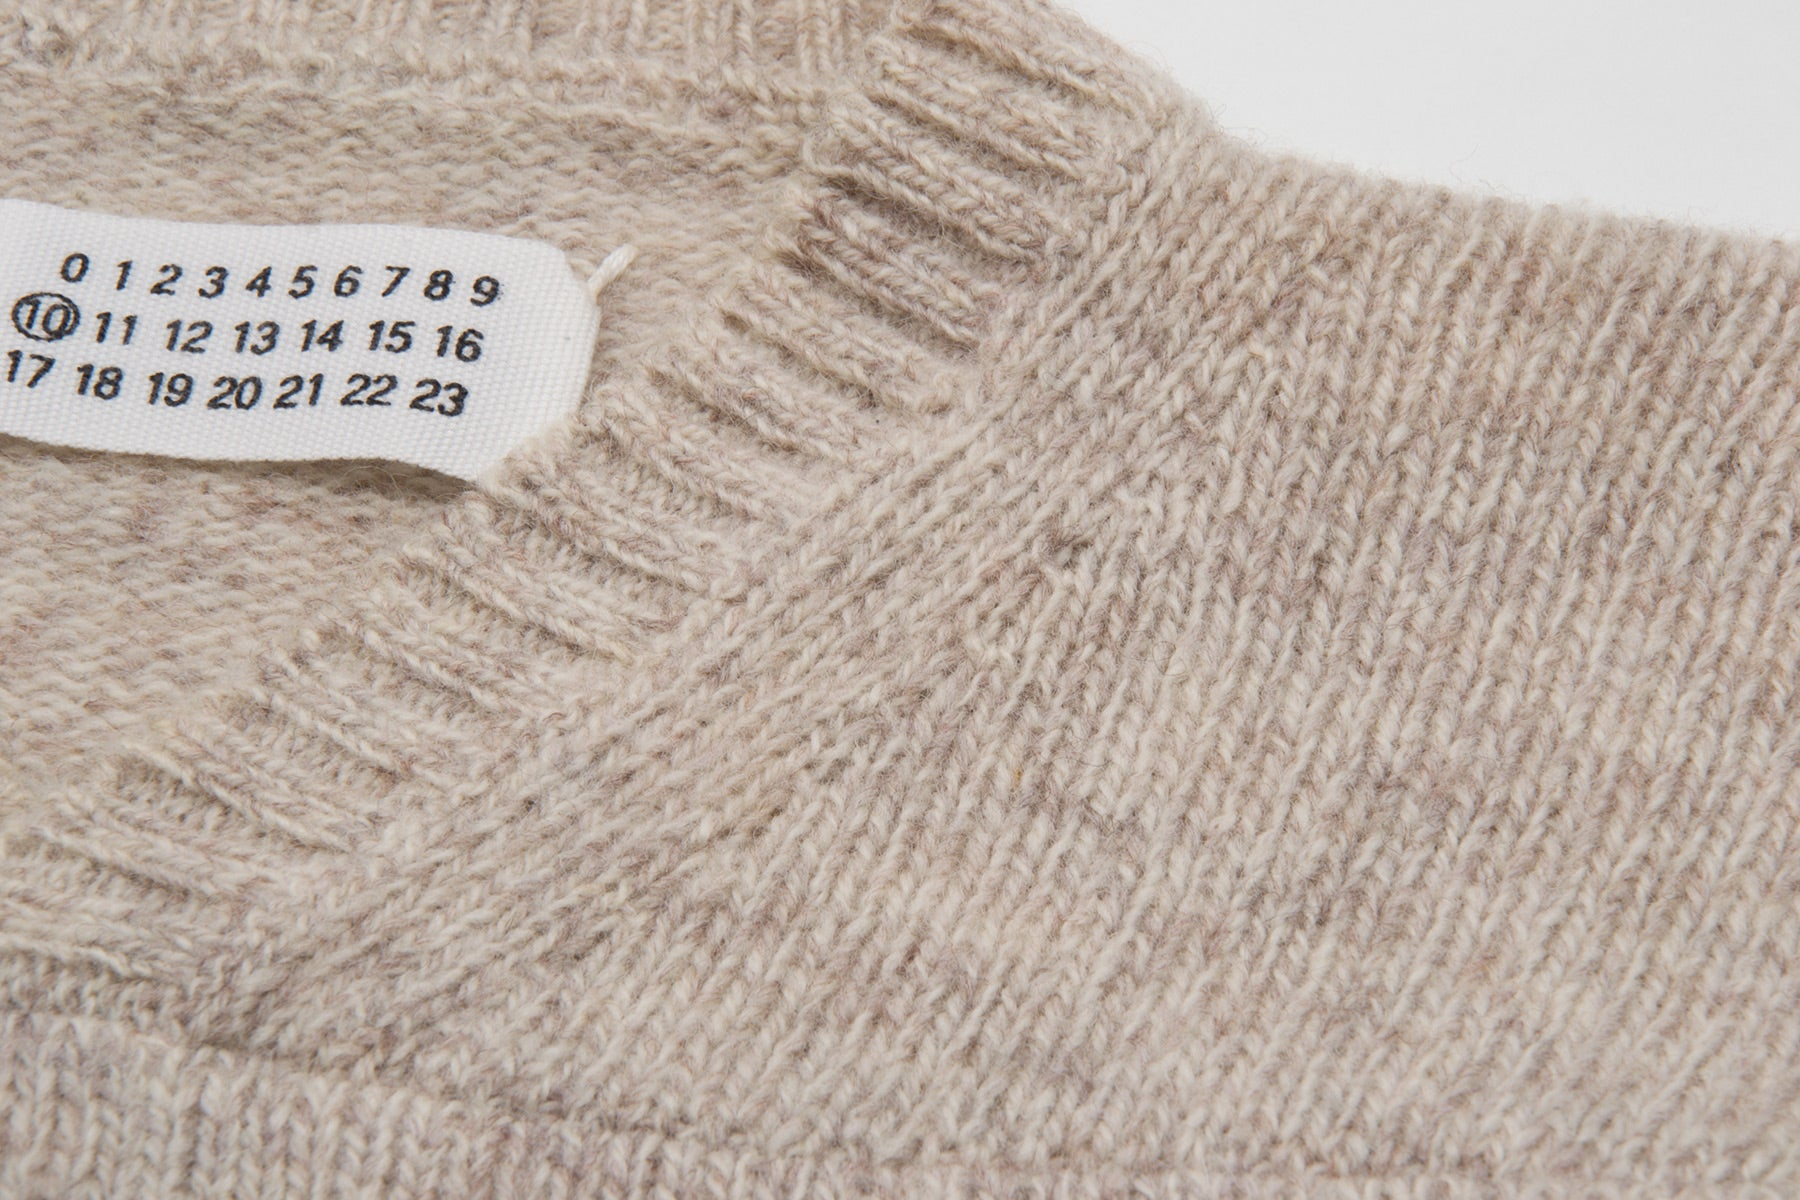 1999 A/W OATMEAL V-NECK SWEATER WITH FRONT SEAMING DETAIL BY MISS DEANNA